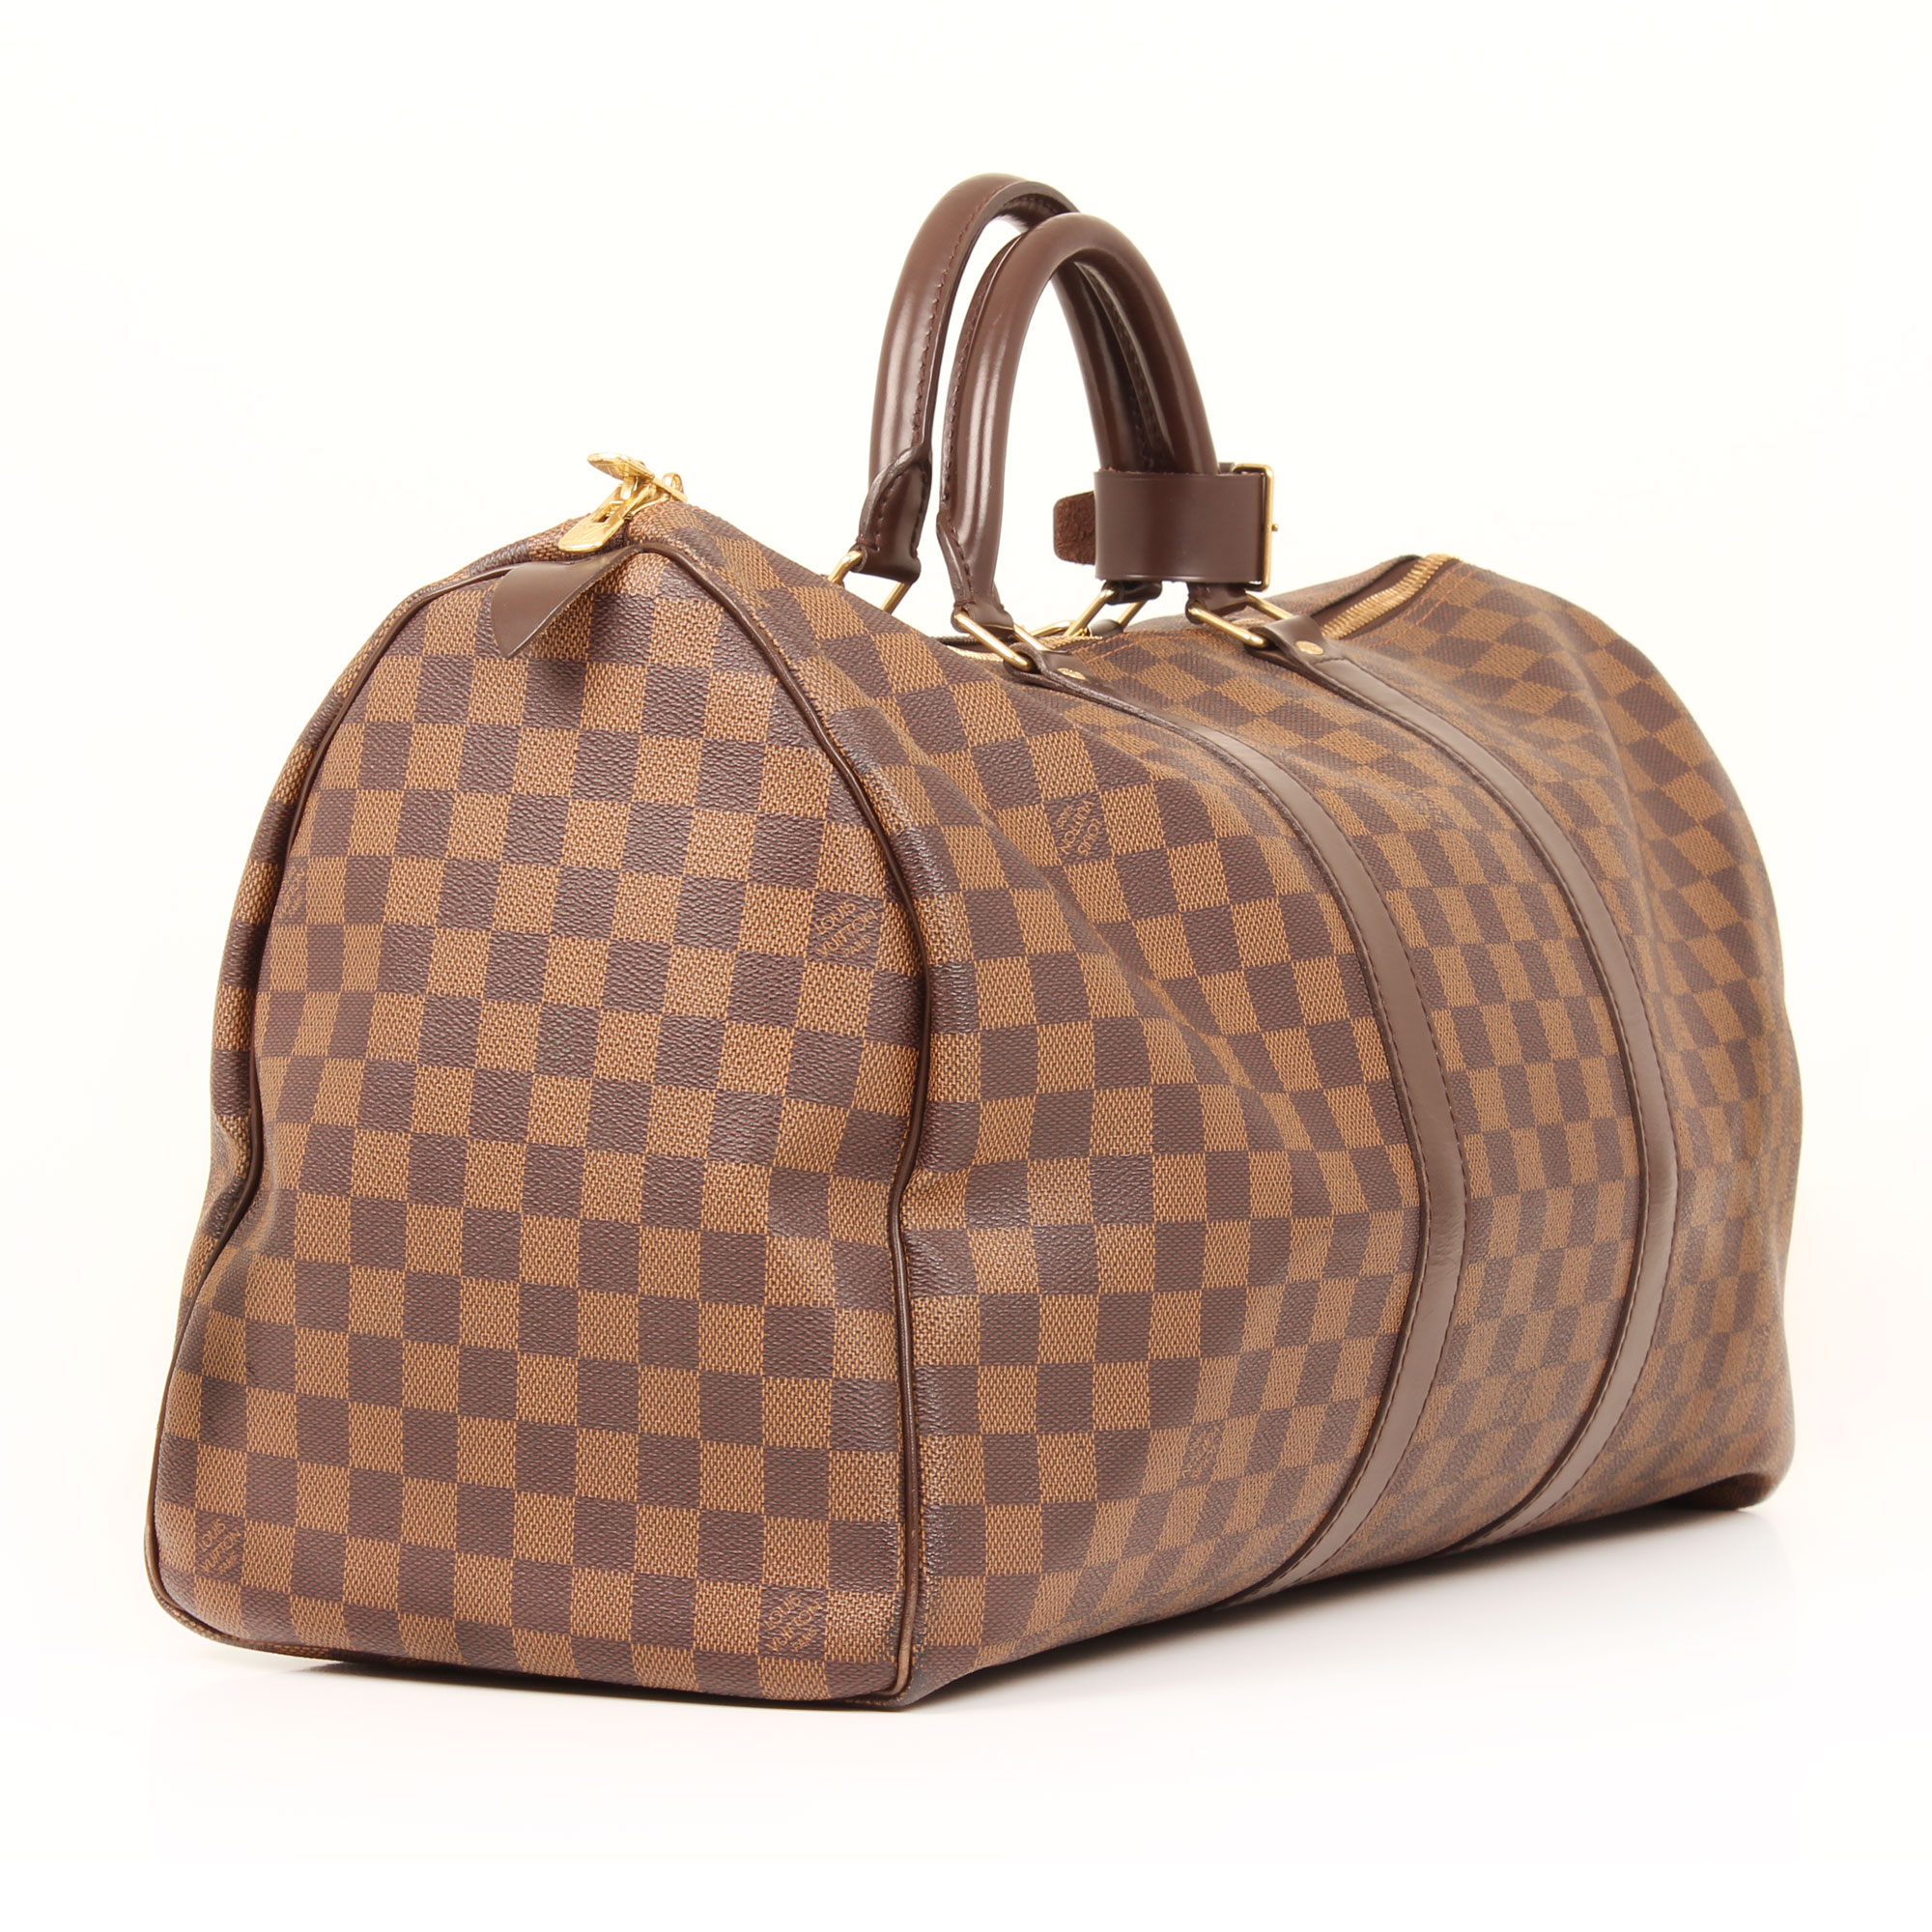 travel-bag-louis-vuitton-keepall-50-damier-ebene-side